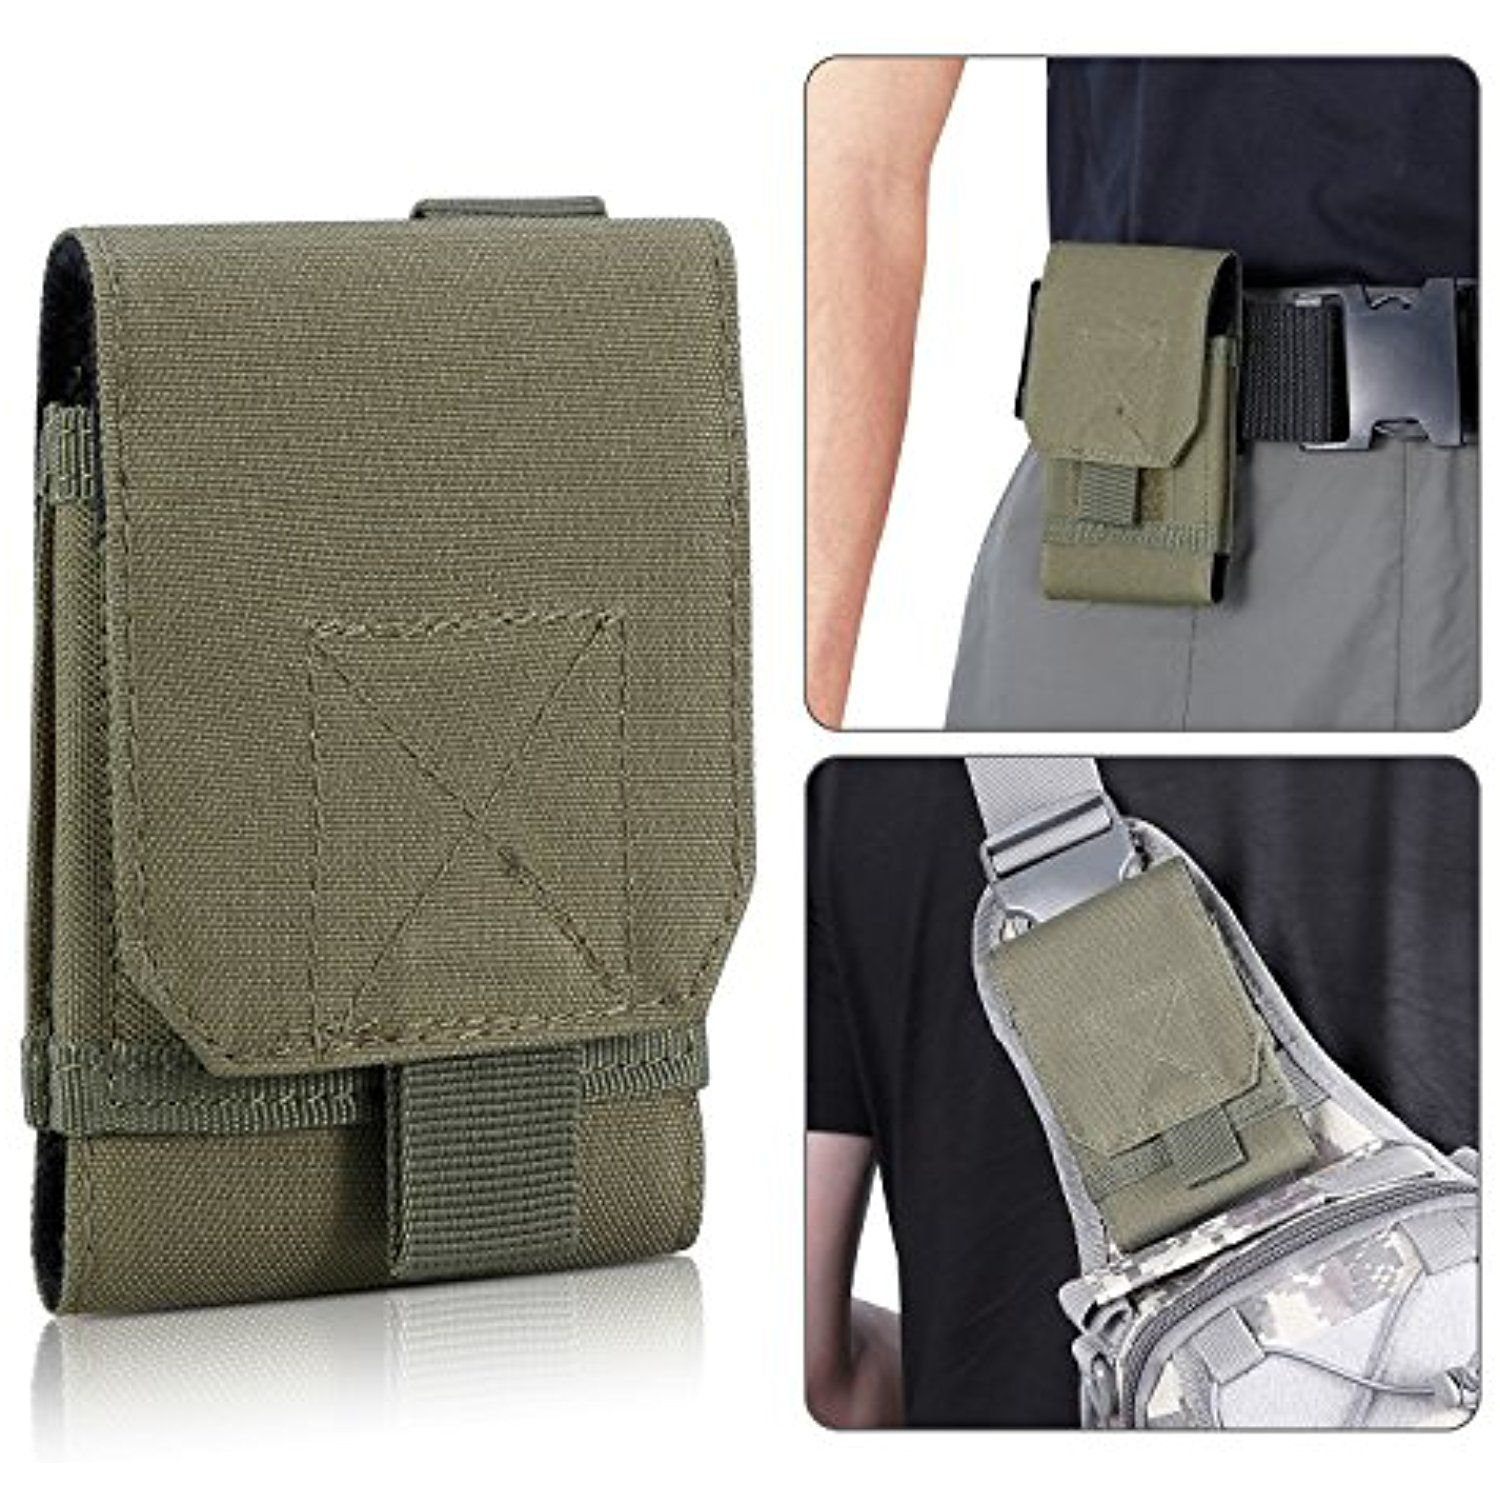 MOLLE Tactical Pouch Compact Utility Gear Outdoor Bag Phone Case for Samsung